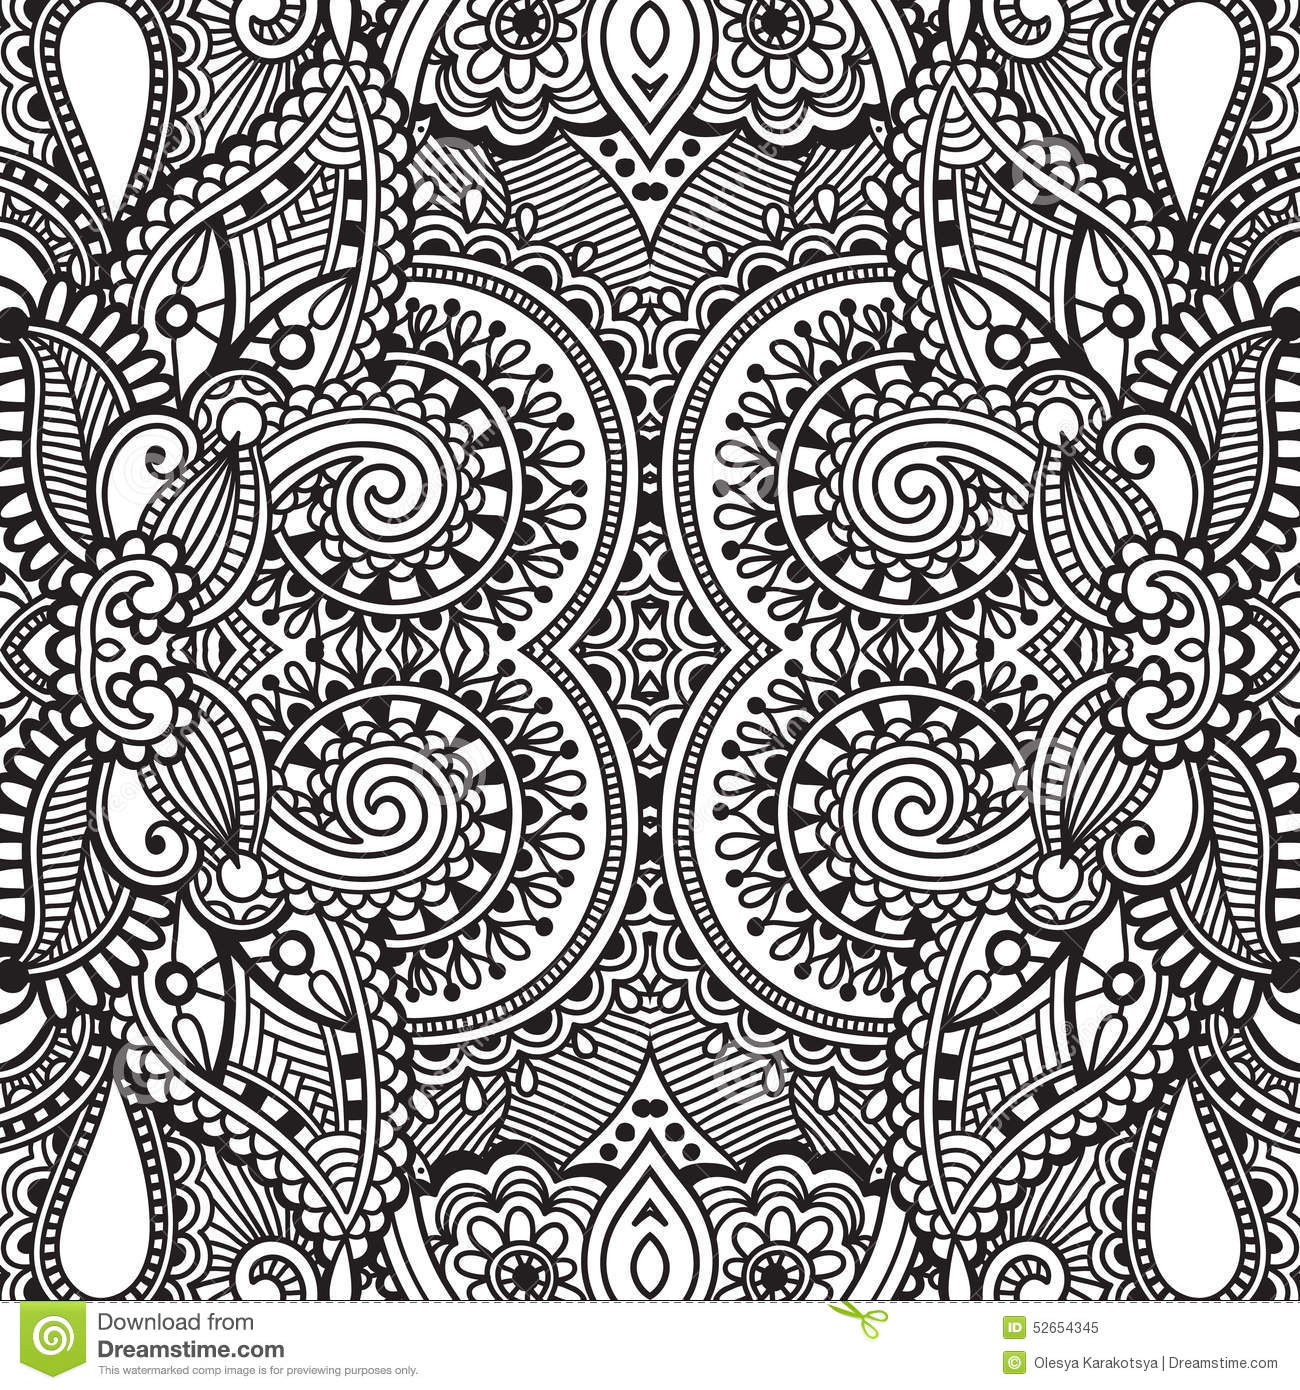 Black and white seamless pattern, hand drawing